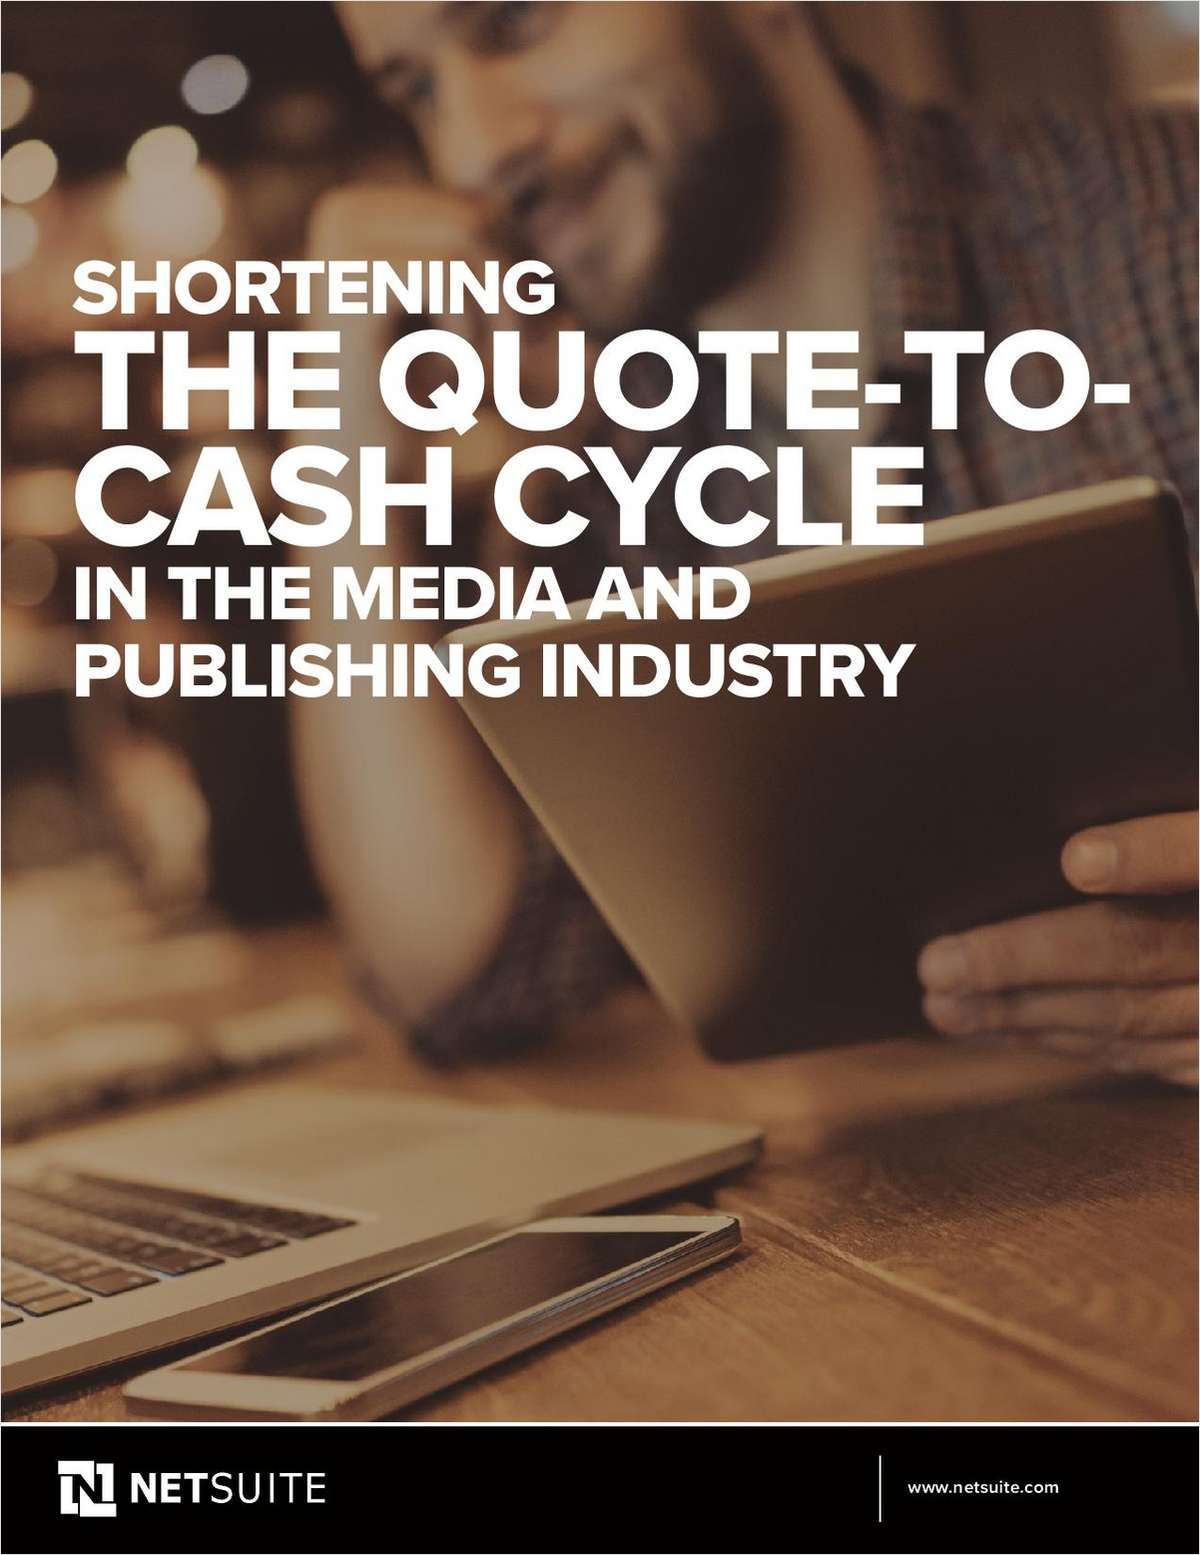 Shortening the Quote-to-Cash Cycle in the Media and Publishing Industry